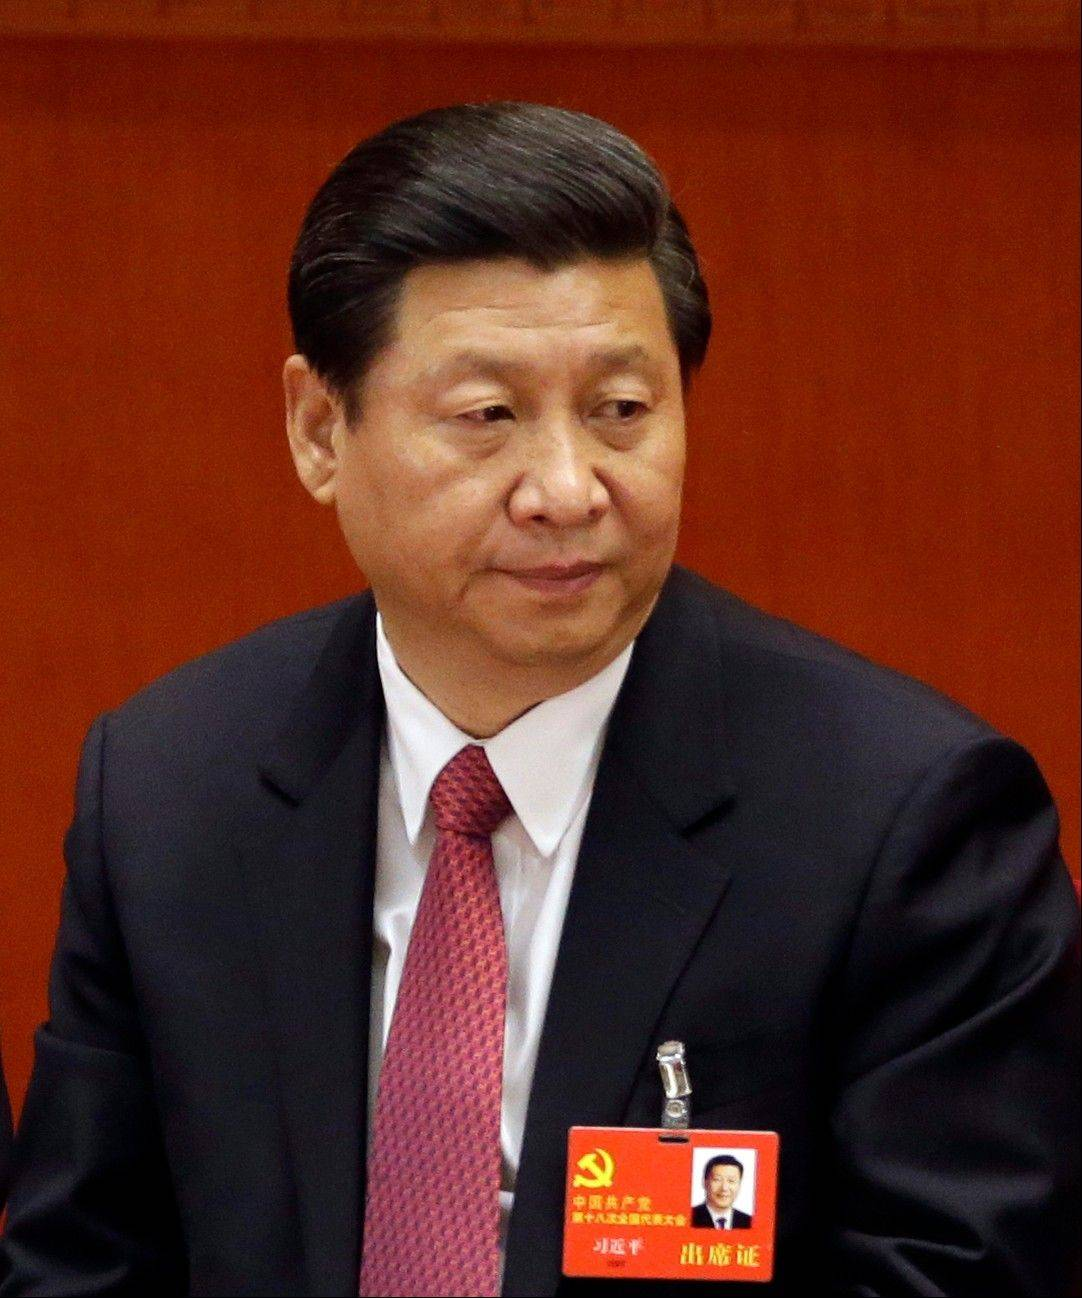 Chinese Vice President Xi Jinping, 59, exudes a comfort with his authority, as befits the son of a hero of the revolution born into the Communist elite. Designated as successor five years ago, Xi will take over as party general secretary from Hu Jintao on Thursday and as president next spring in only China's second orderly transfer of power.